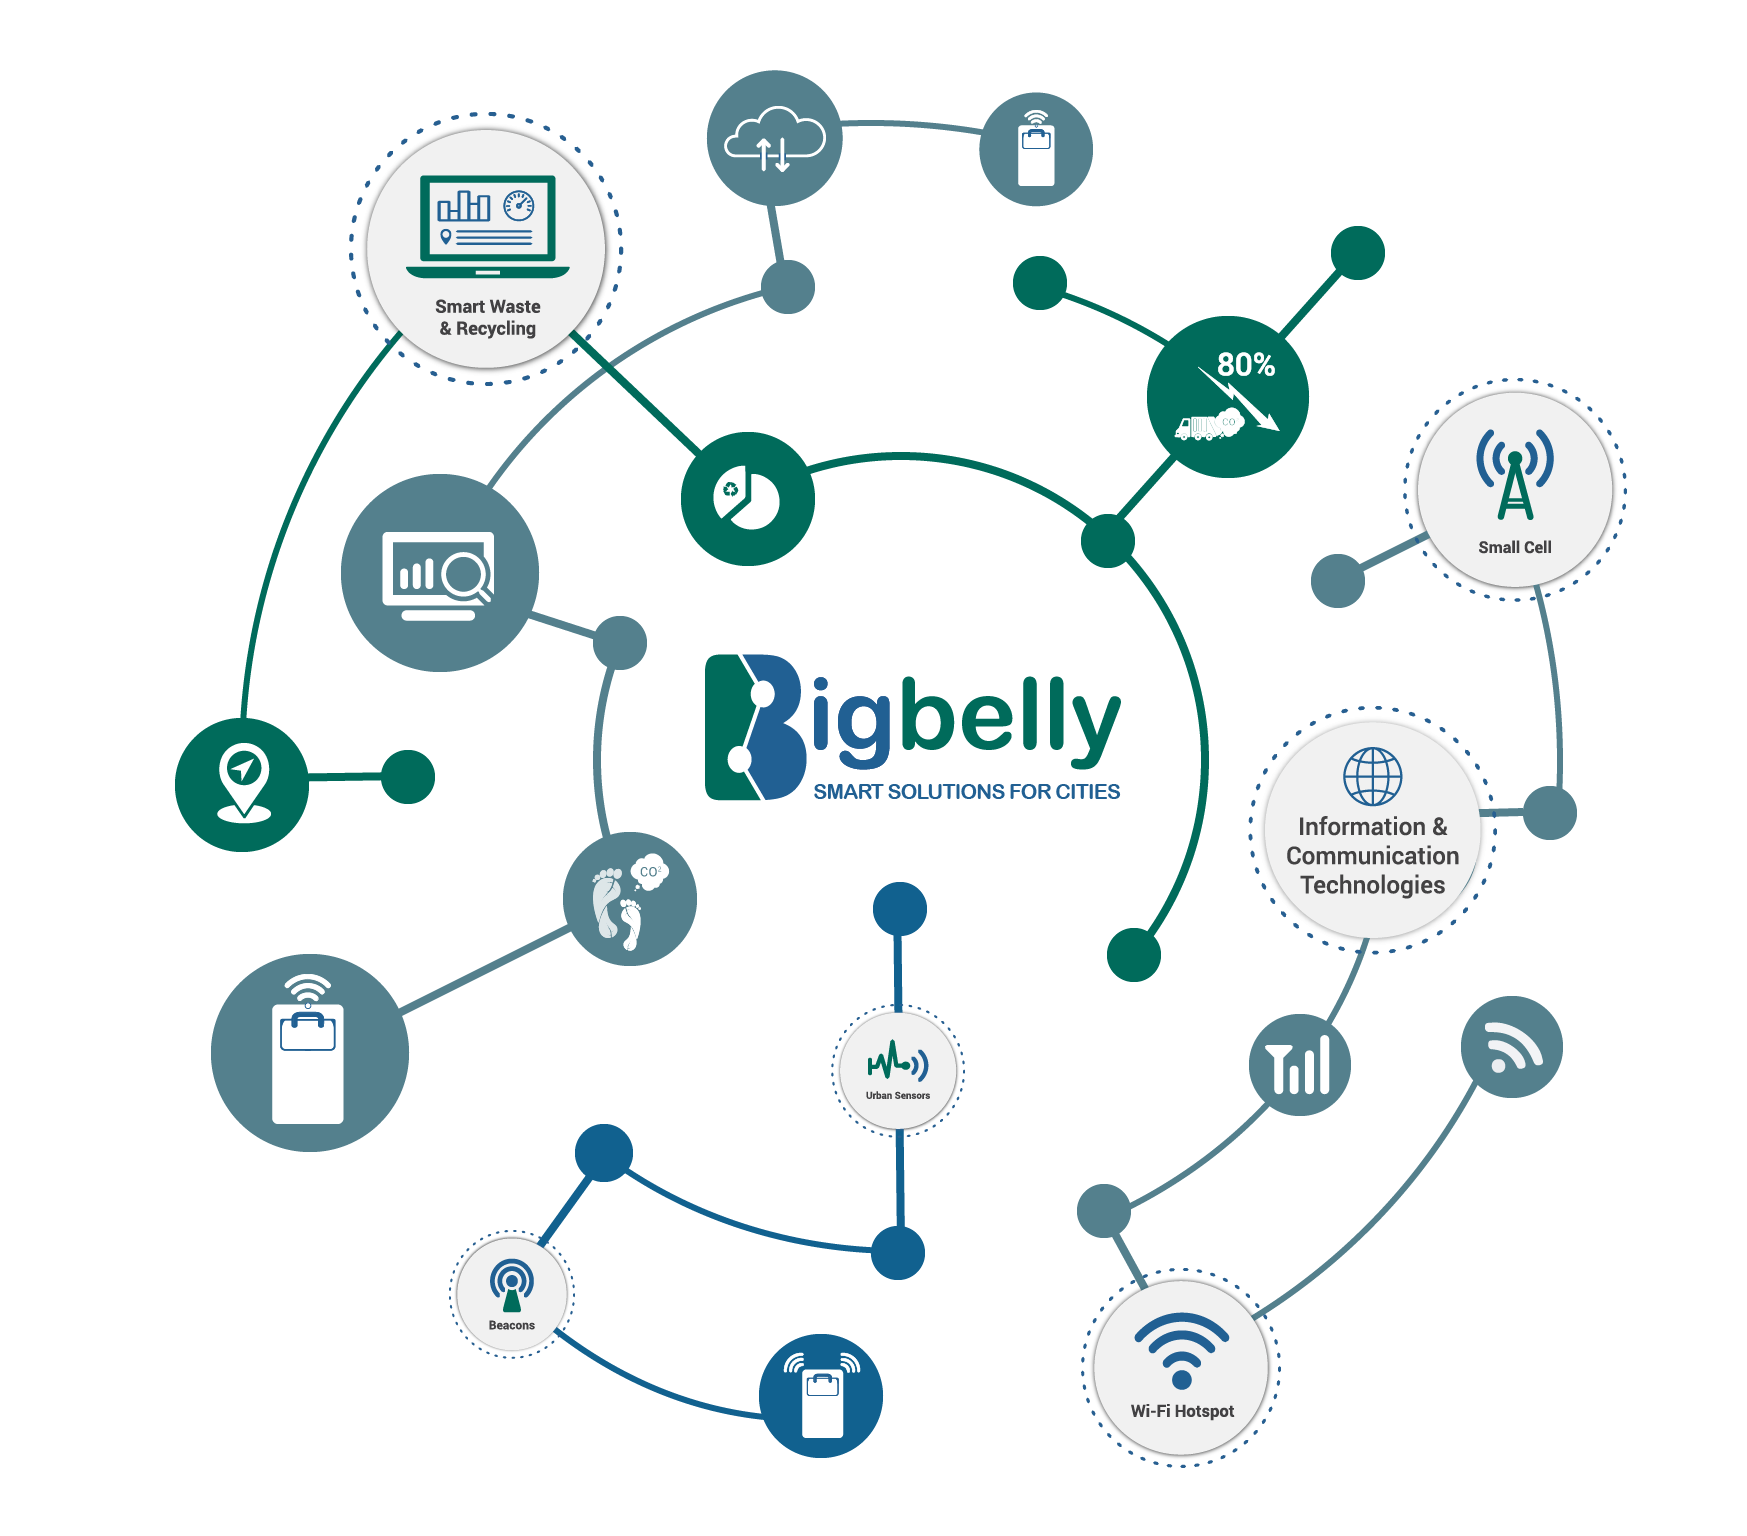 Bigbelly Smart Waste & Recycling IoT Graphic